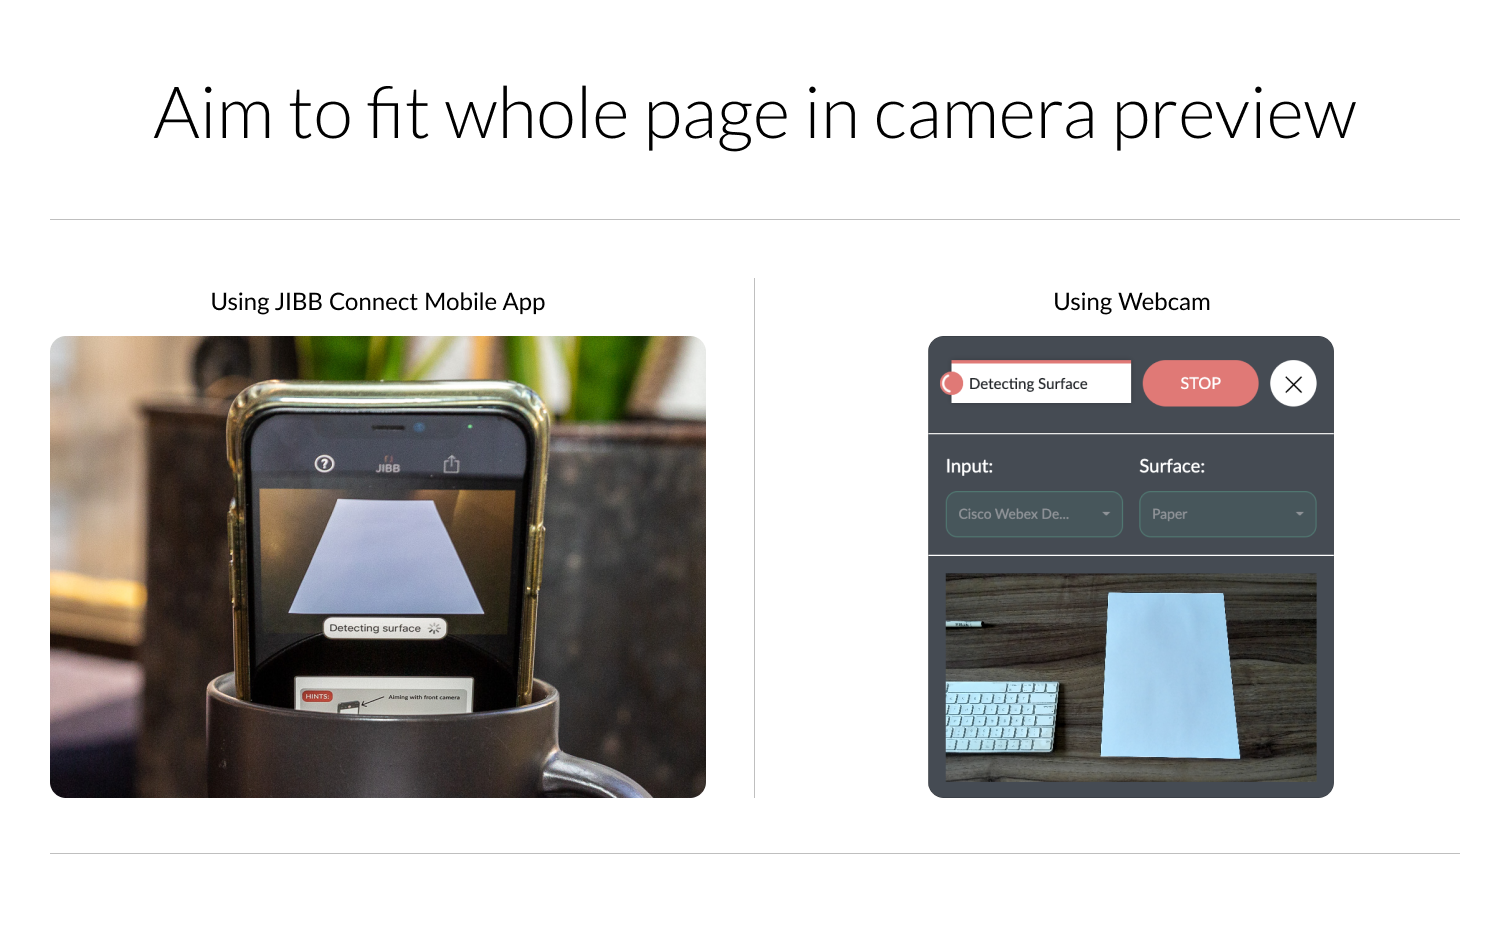 Whole page camera preview